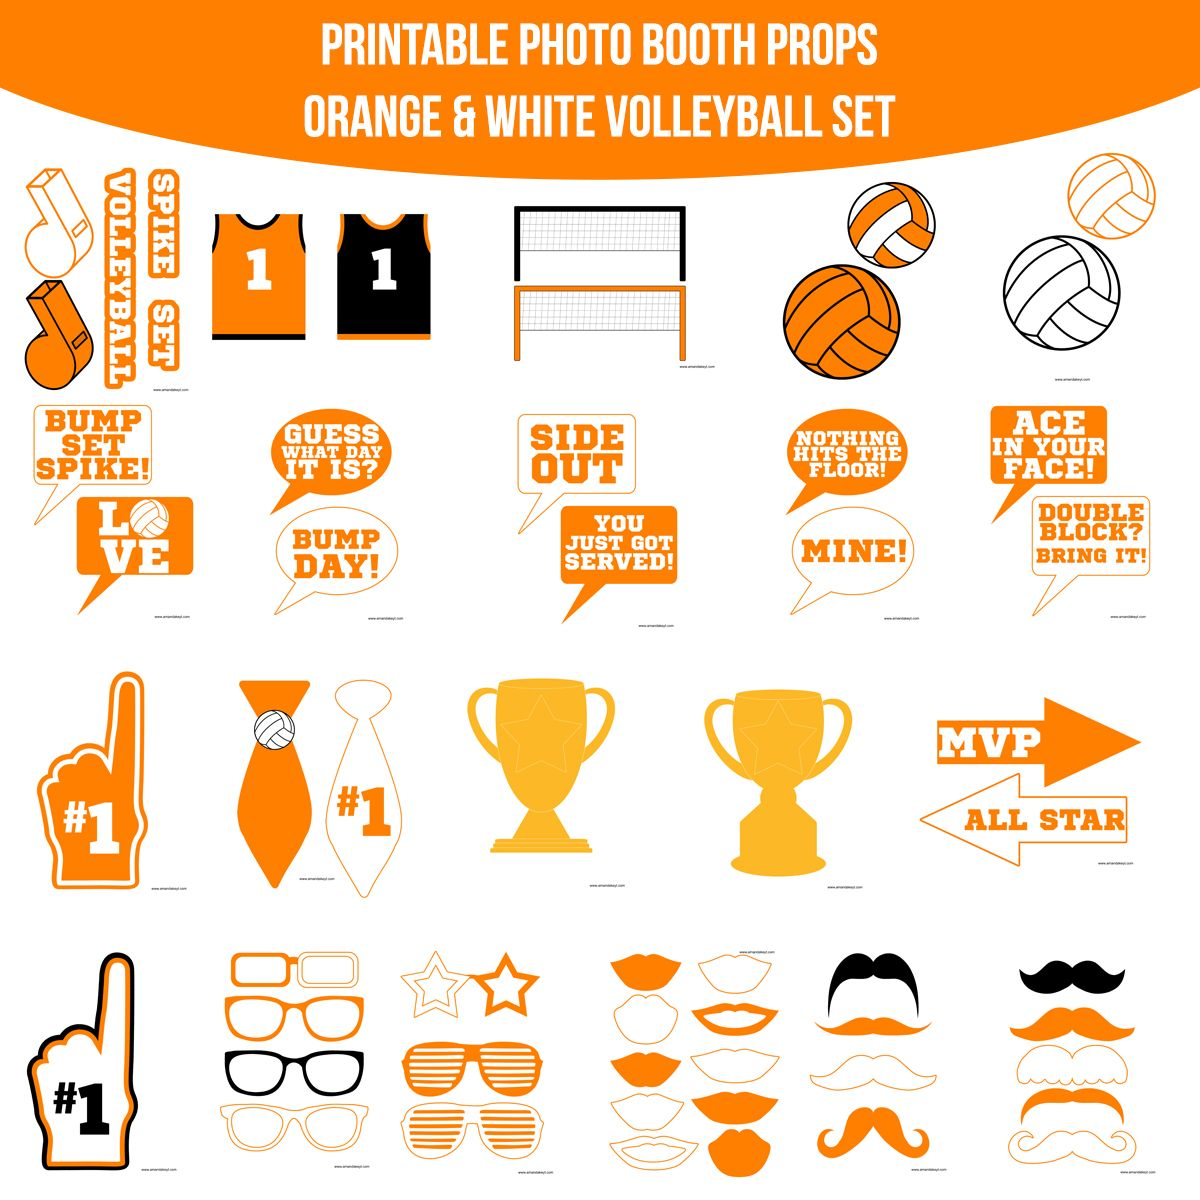 Pin By Laura Coyne On Volleyball Photobooth Props Printable Photo Booth Printable Designs